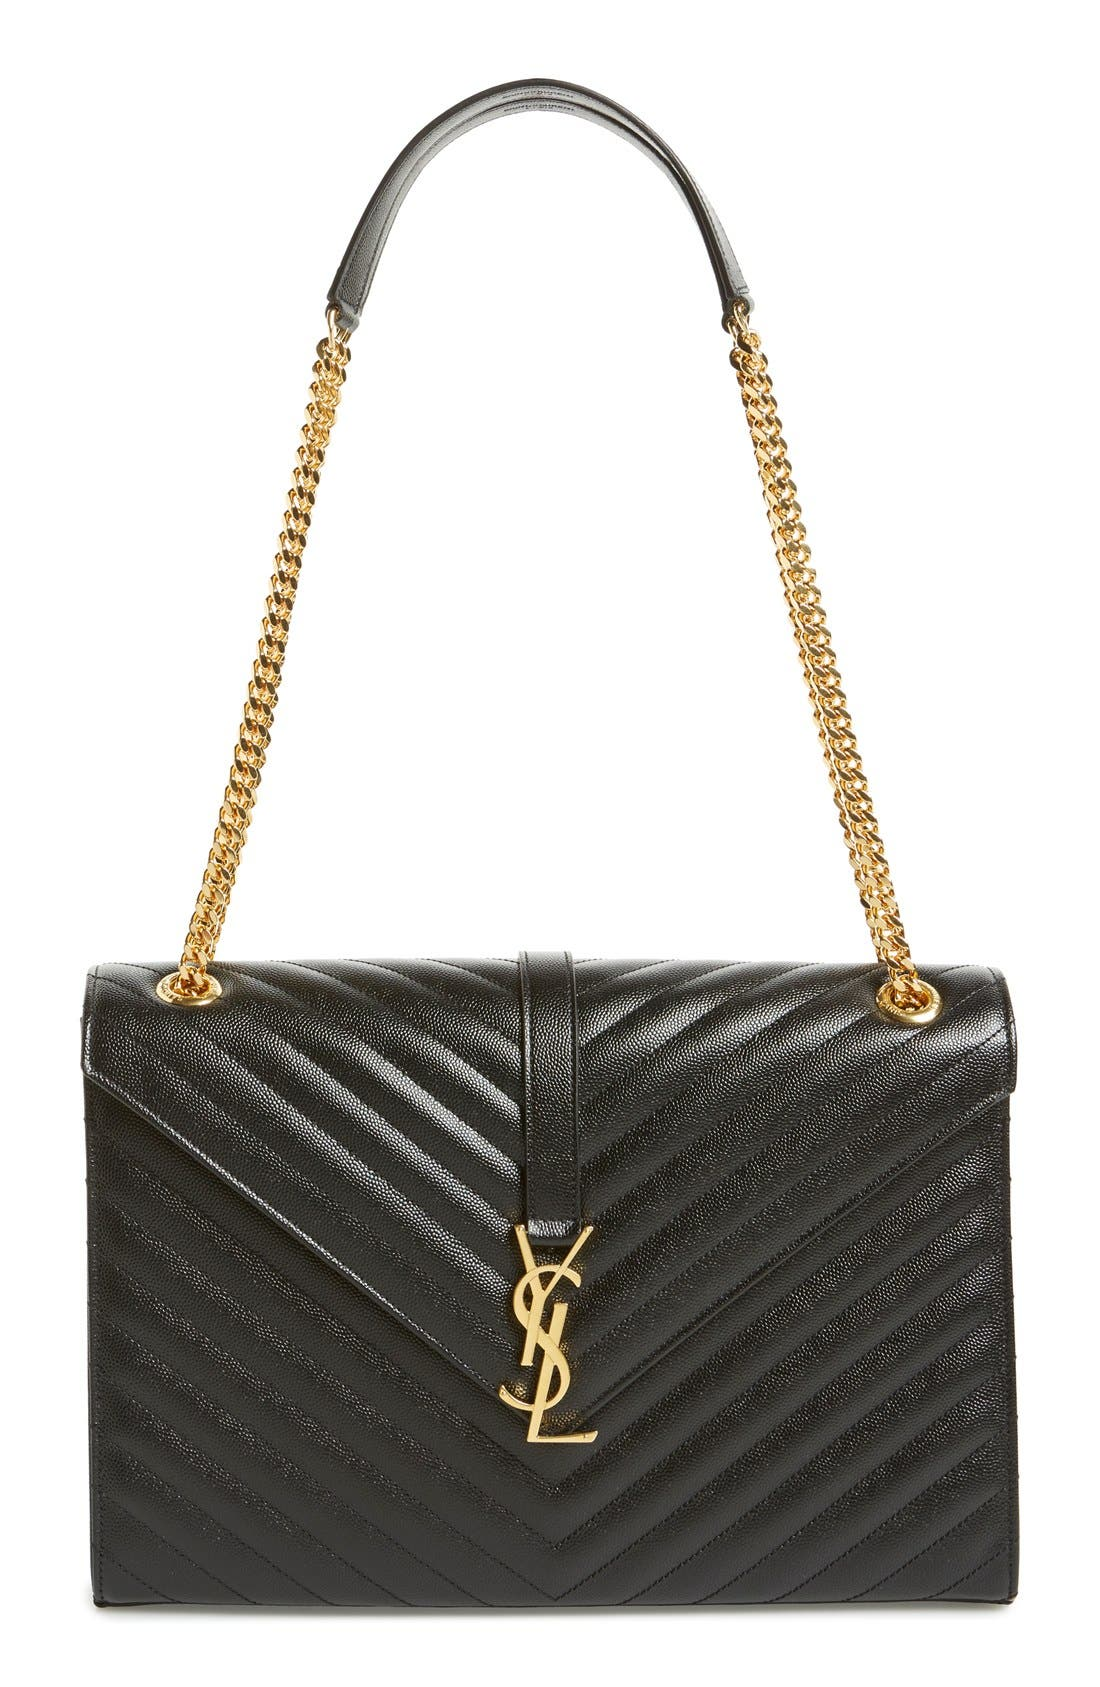 Saint Laurent 'Large Monogram' Grained Leather Shoulder Bag